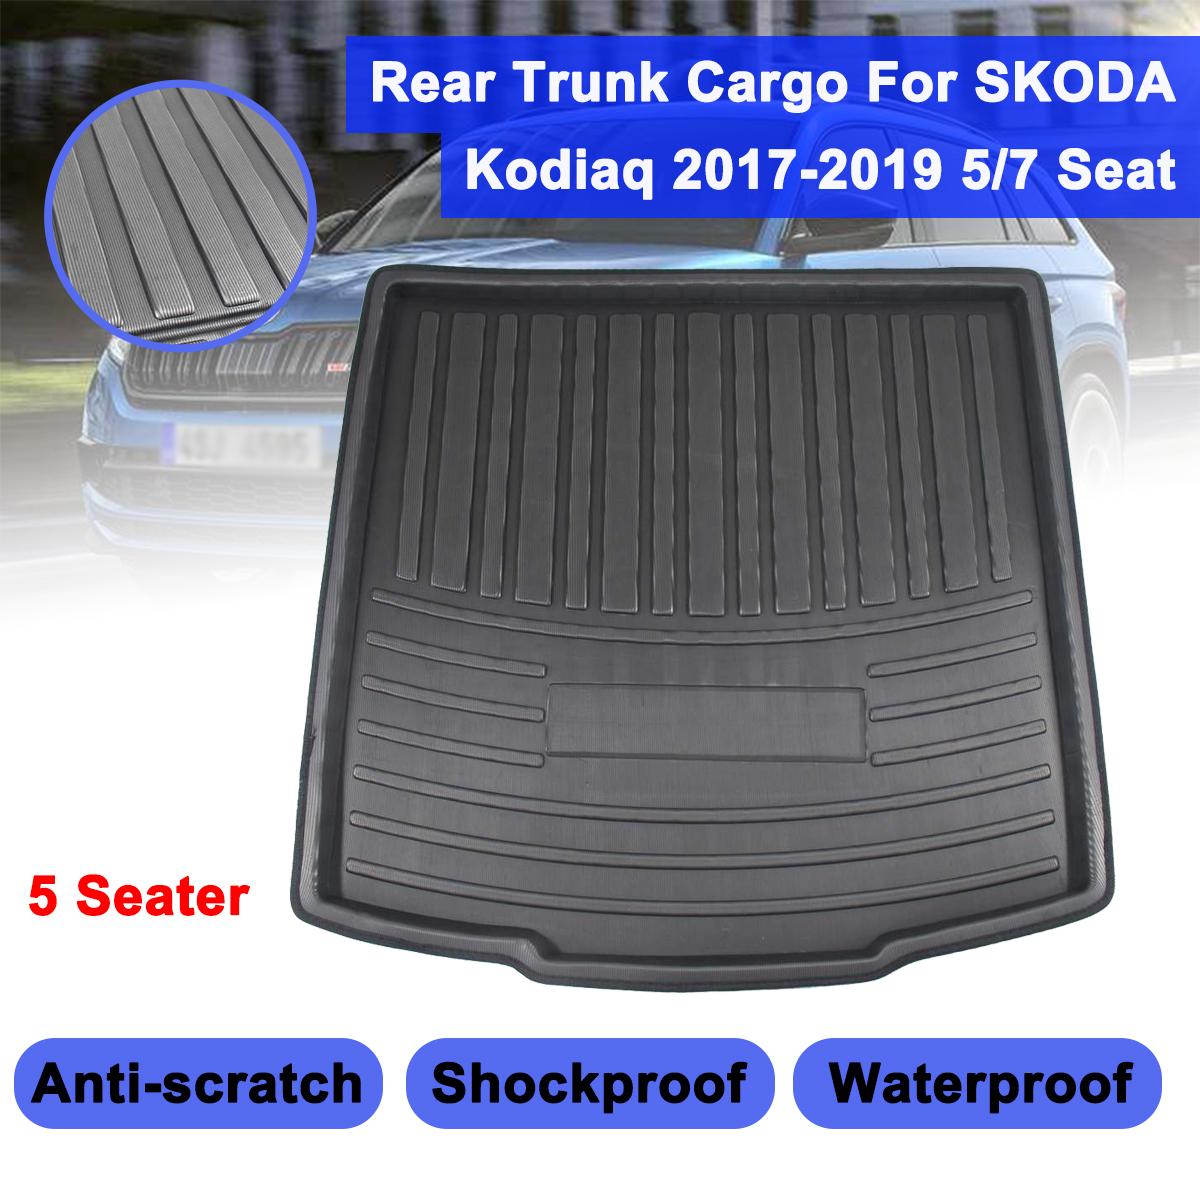 Matt Mat For SKODA Kodiaq 5/7 Seat Seater 2017 2018 2019 Floor Carpet Kick Pad Car Cargo Liner Boot Tray Rear Trunk Cover|Floor Mats| |  - title=